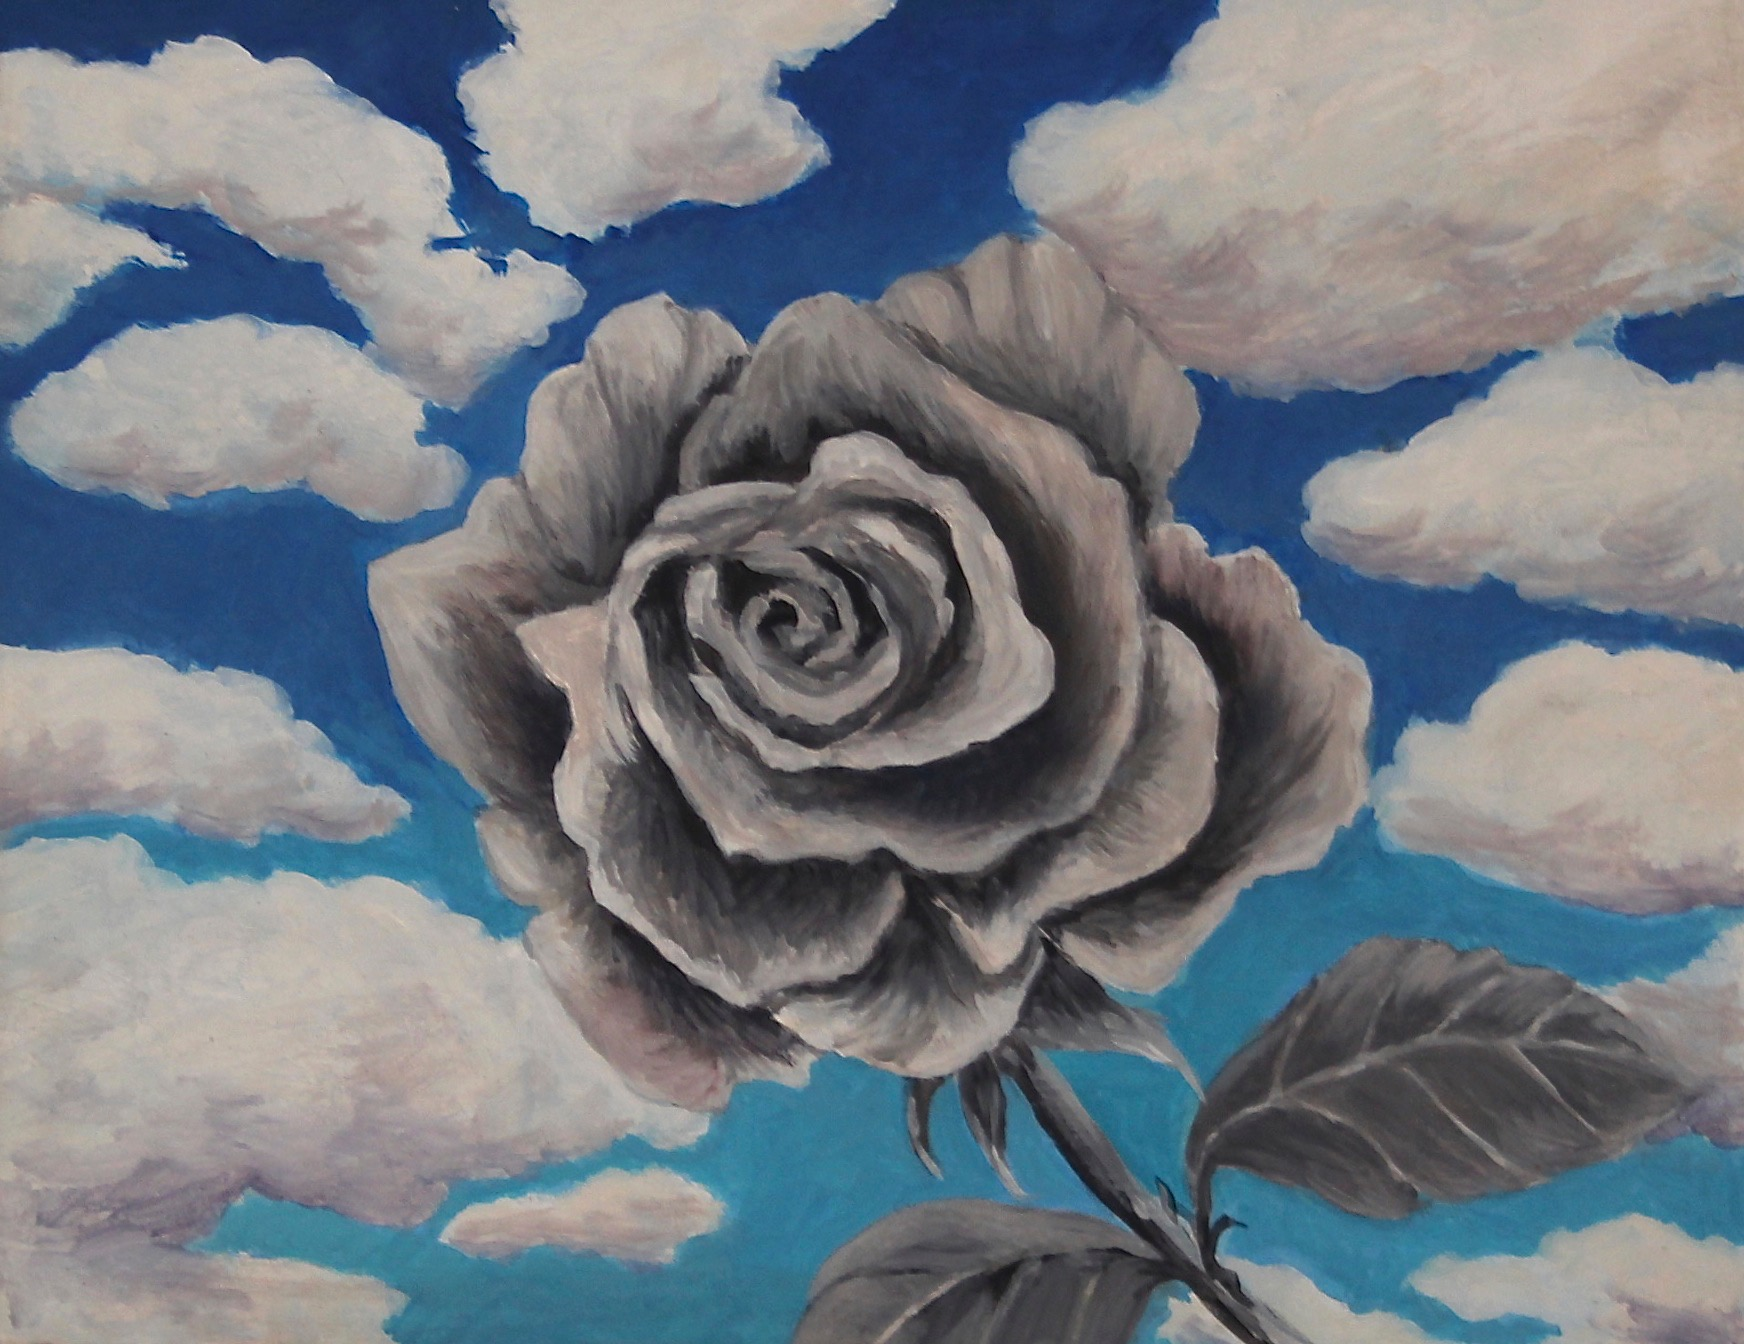 Rose Study, 2015, oil on board, 30 x 30 in, SOLD